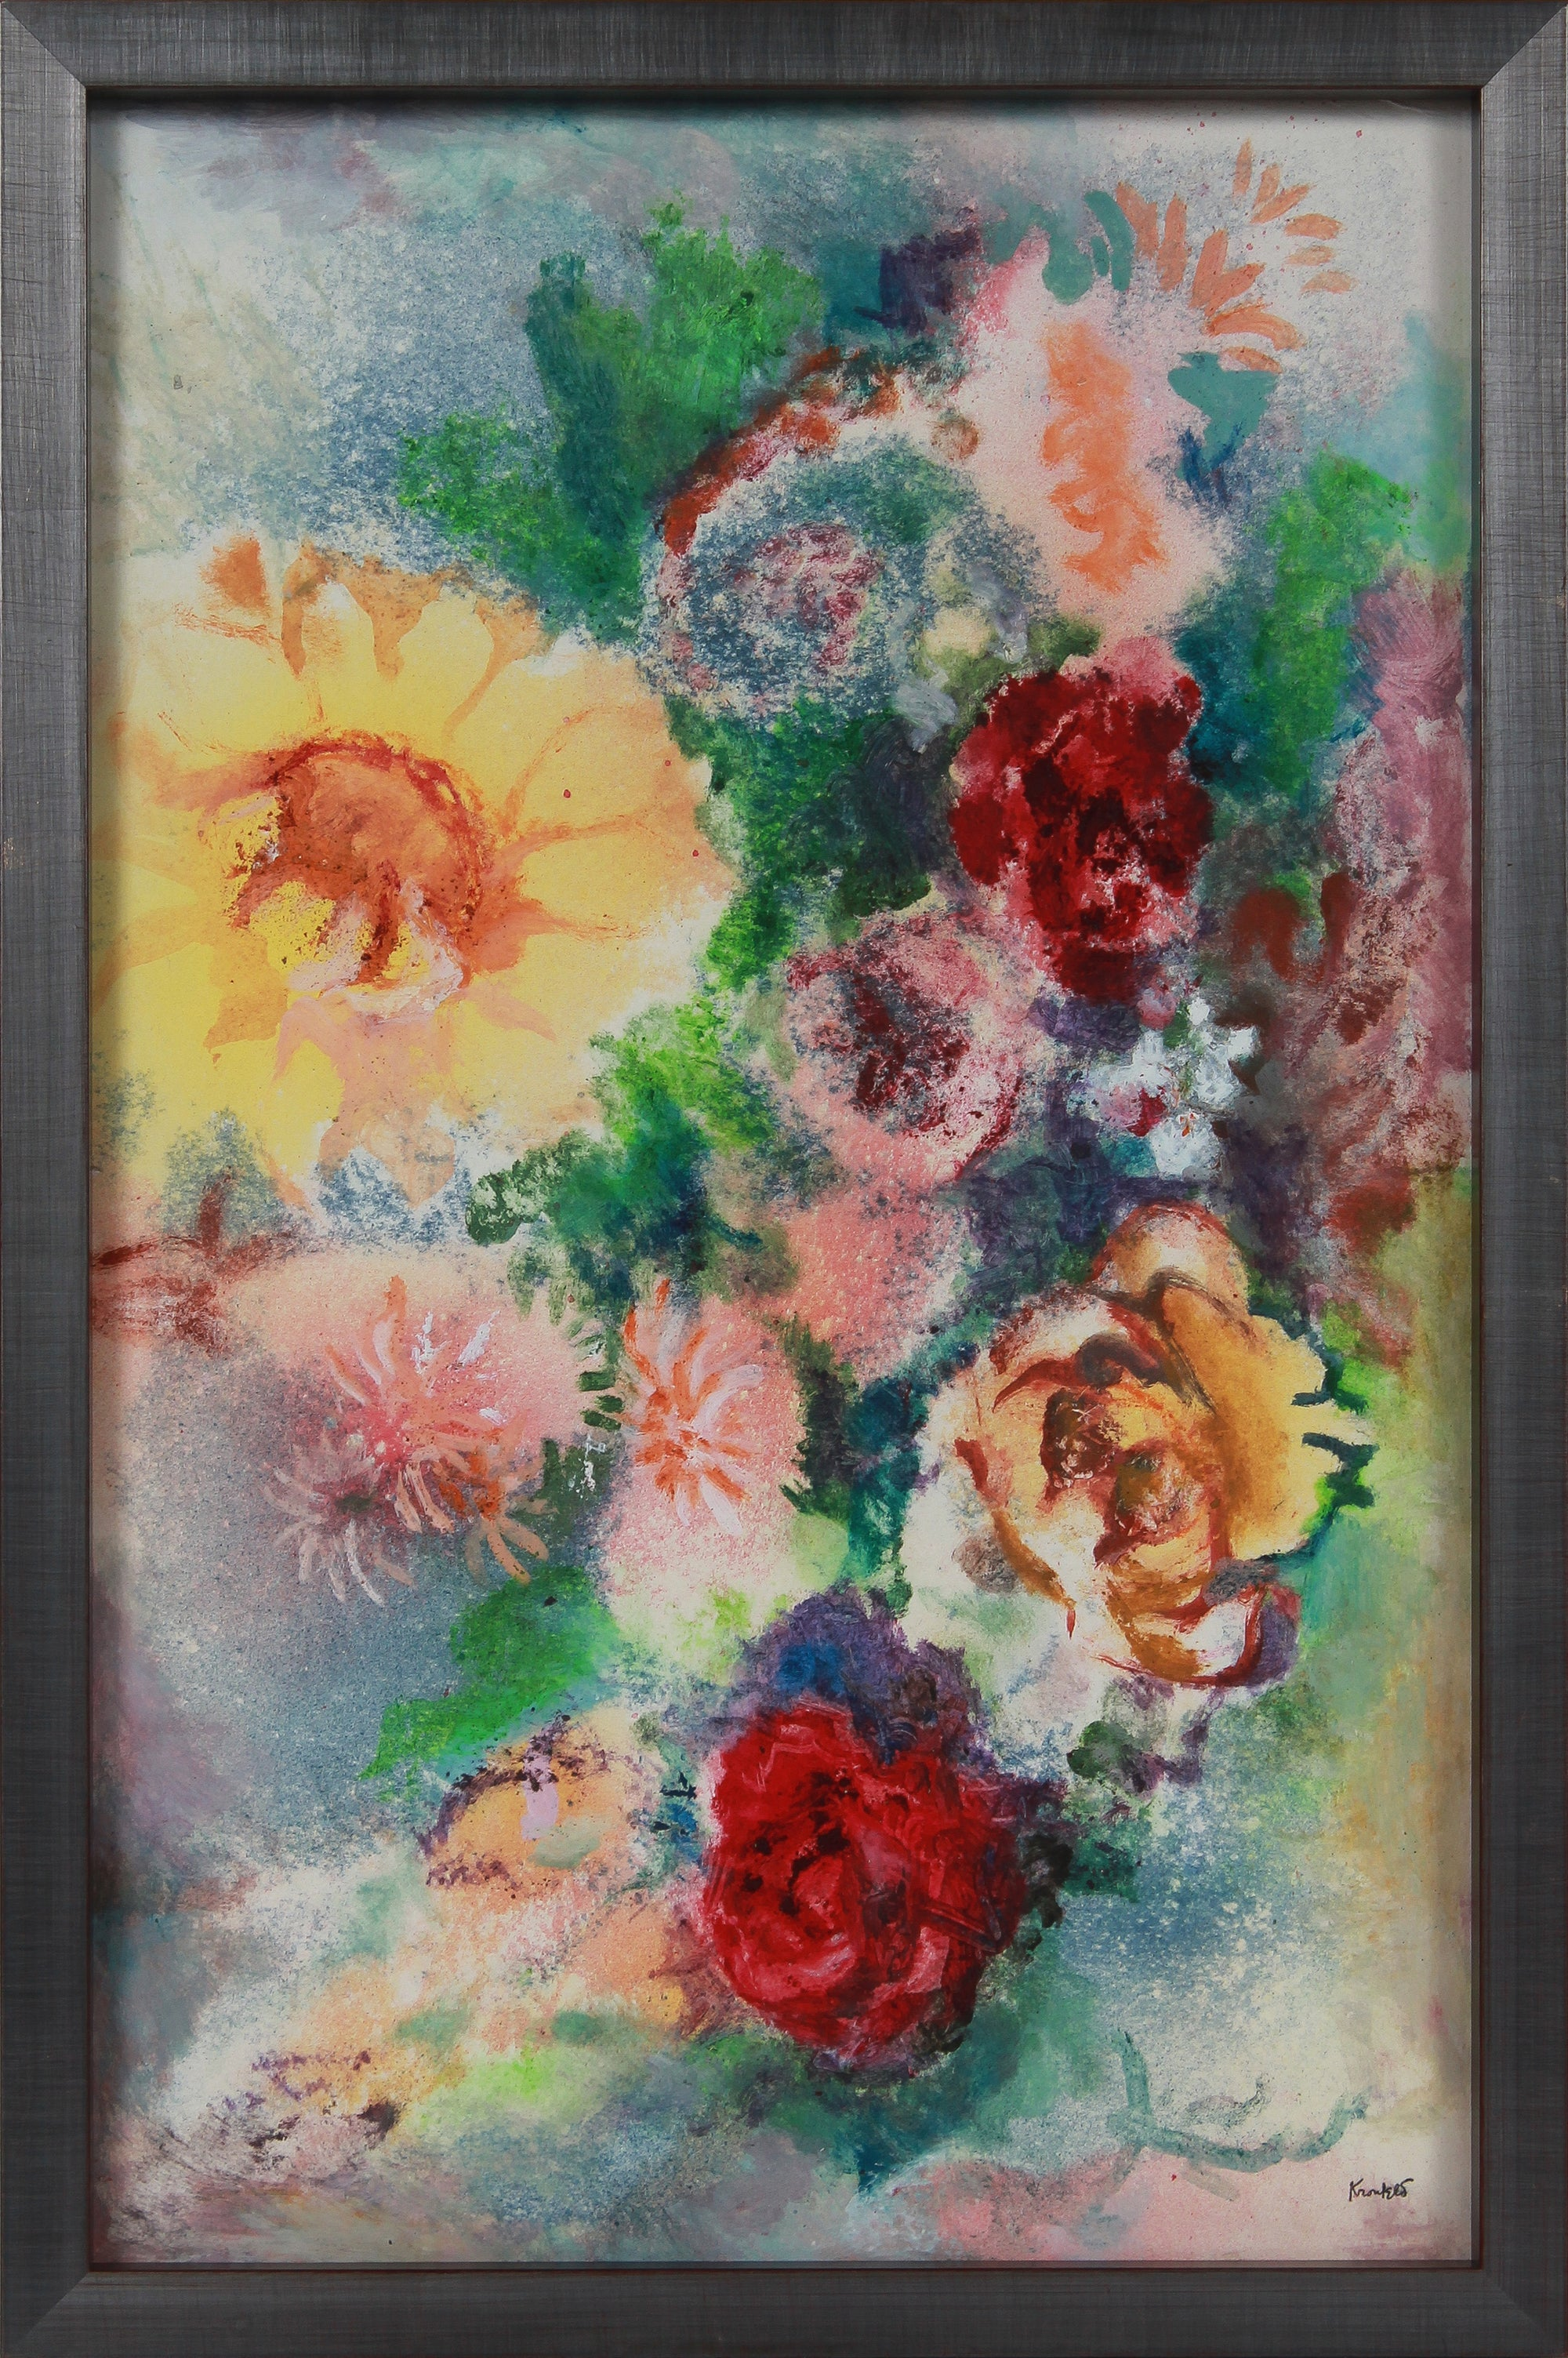 Vivid Floral Still Like <br>1960-70s Oil & Sand Mixed Media <br><br>#B2679